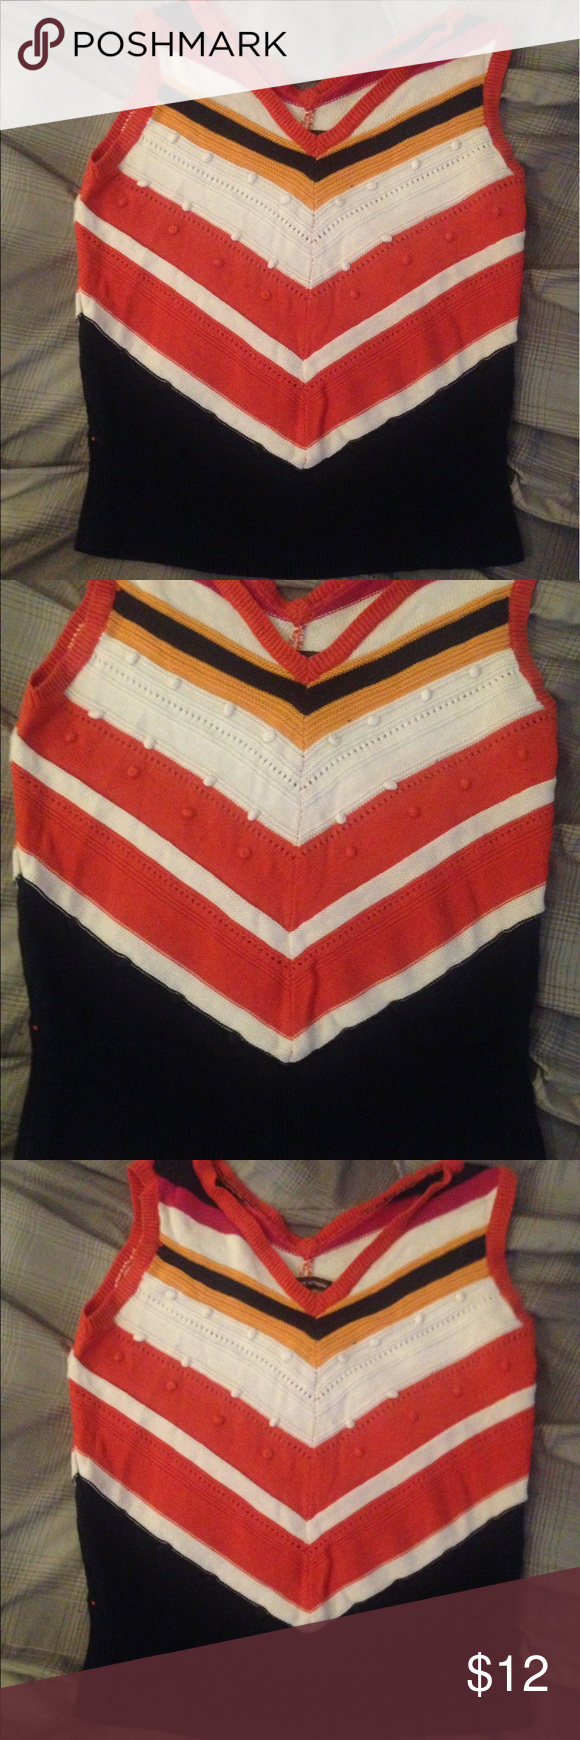 Adrienne Vittadini Top Excellent condition Adrienne Vittadini Top. Size is Large. Adrienne Vittadini Tops